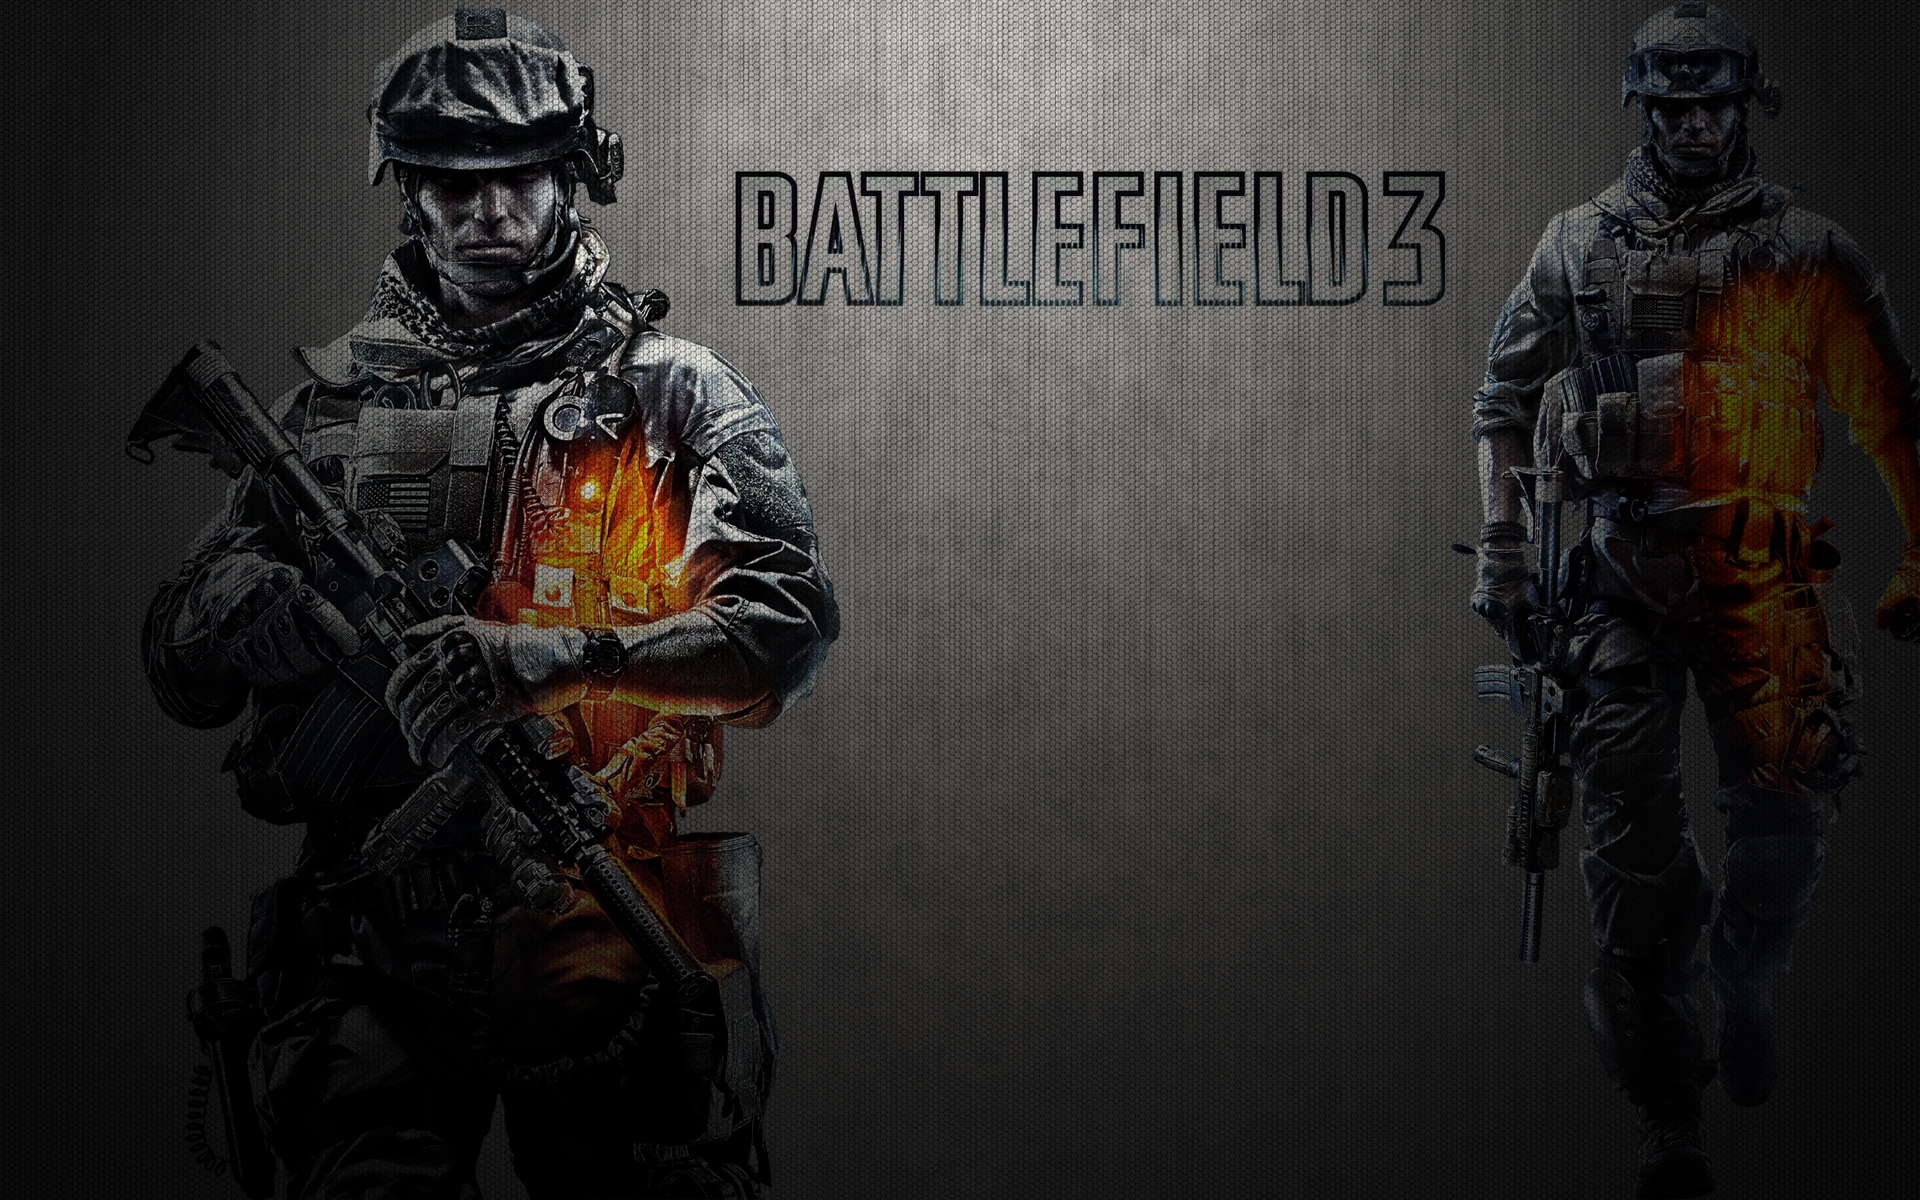 Battlefield 3 Wallpaper Soldier By Therealking94